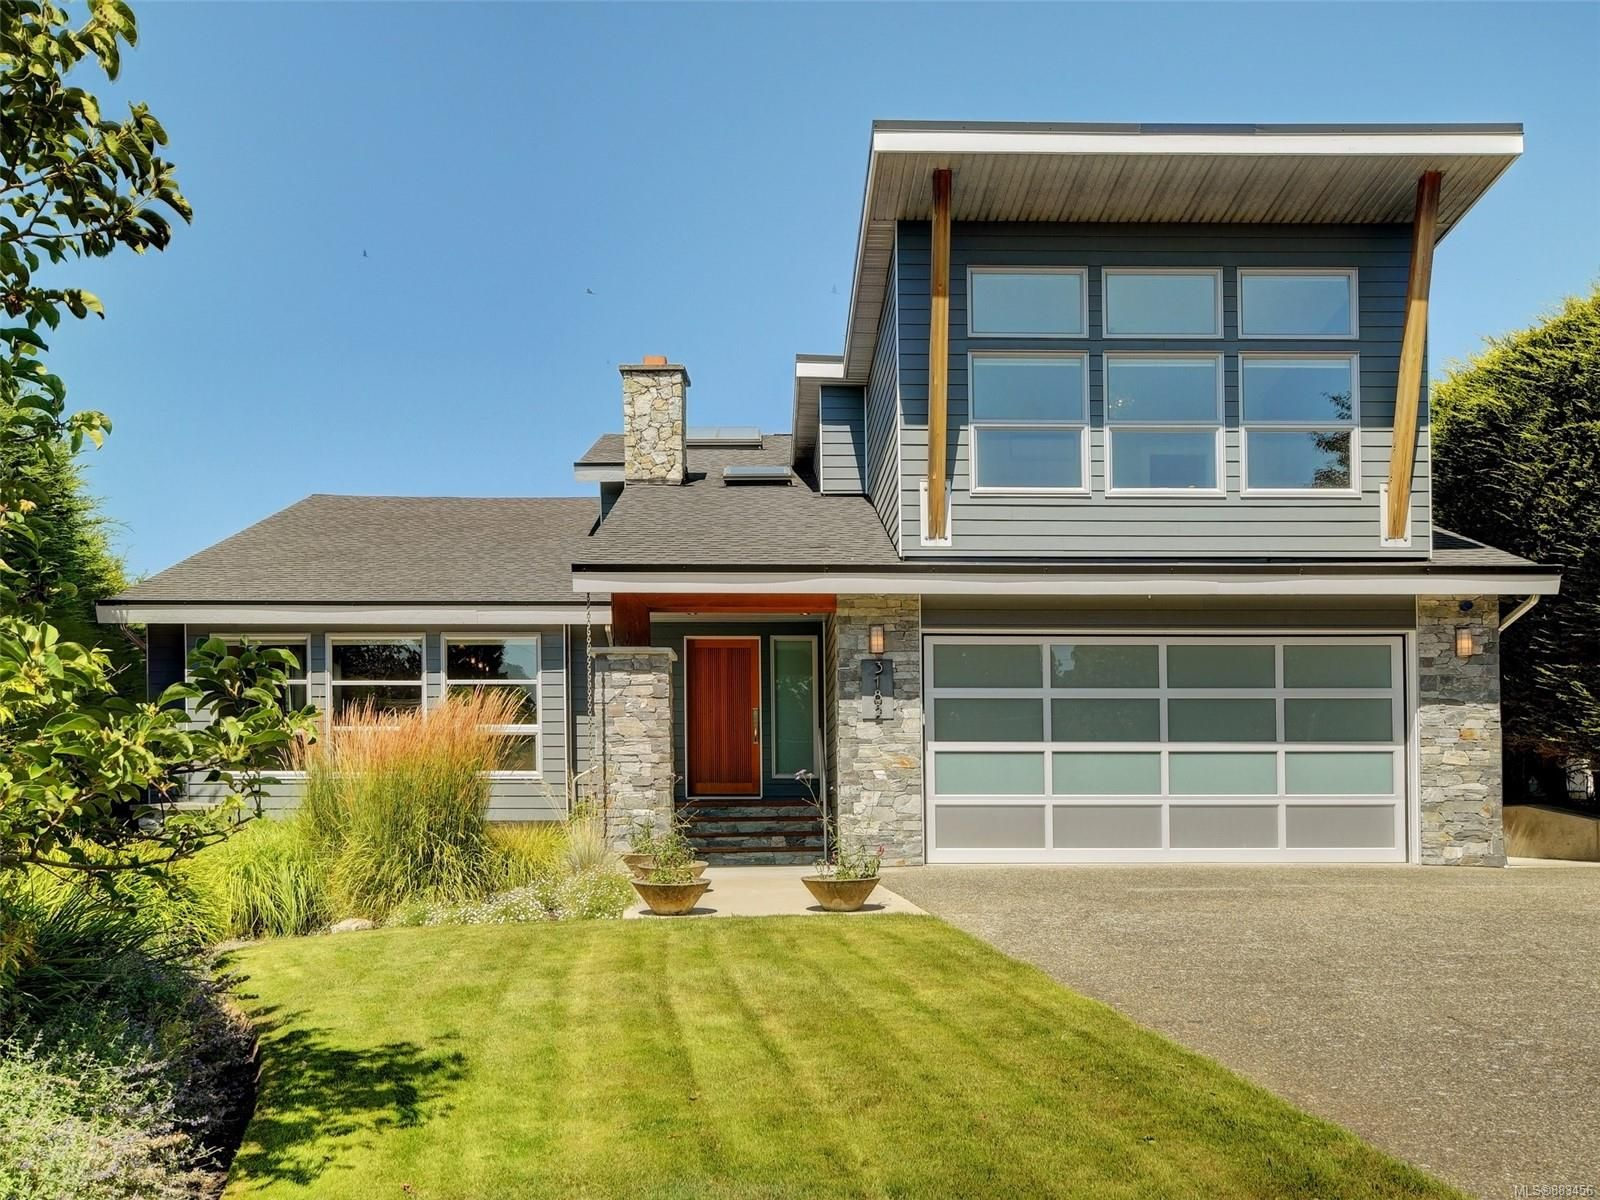 Main Photo: 3182 Wessex Close in : OB Henderson House for sale (Oak Bay)  : MLS®# 883456